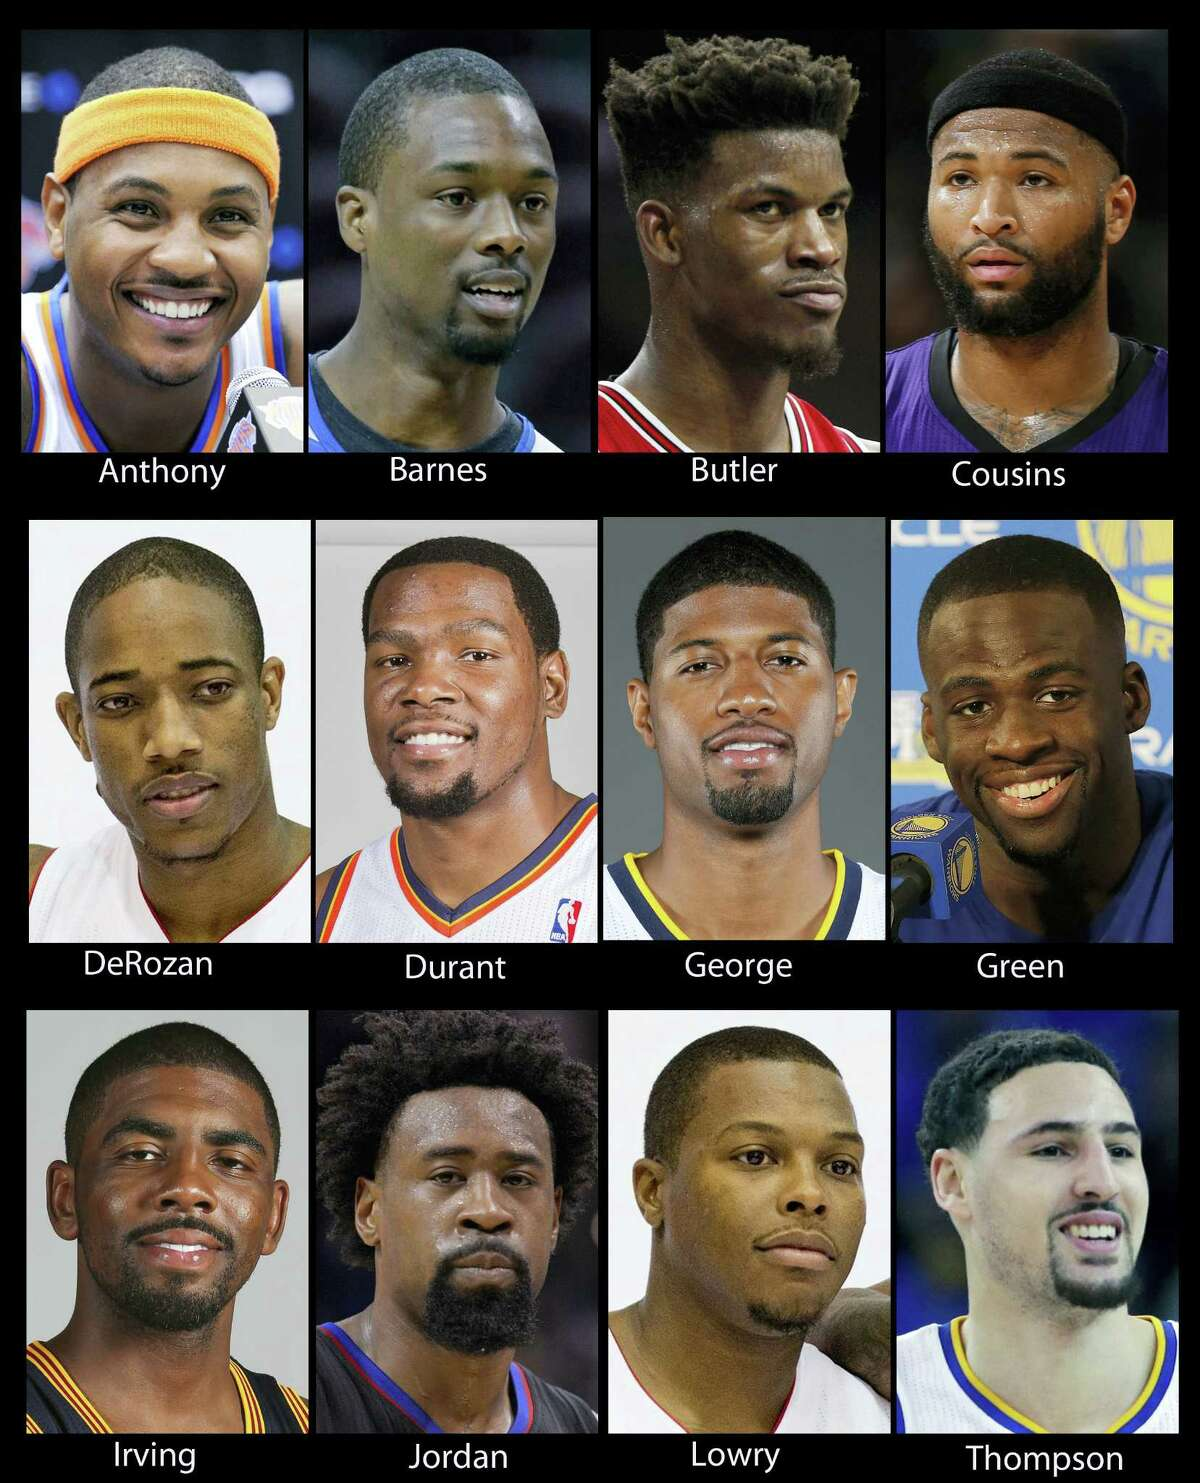 While they're not the Dream Team, the U.S. squad in Rio is still an impressive group of players. The team includes: Golden State's Kevin Durant, Klay Thompson and Draymond Green; New York's Carmelo Anthony; Cleveland's Kyrie Irving; Toronto's Kyle Lowry and DeMar DeRozan; Indiana's Paul George; Dallas' Harrison Barnes; Chicago's Jimmy Butler; Sacramento's DeMarcus Cousins and the Clippers' DeAndre Jordan.